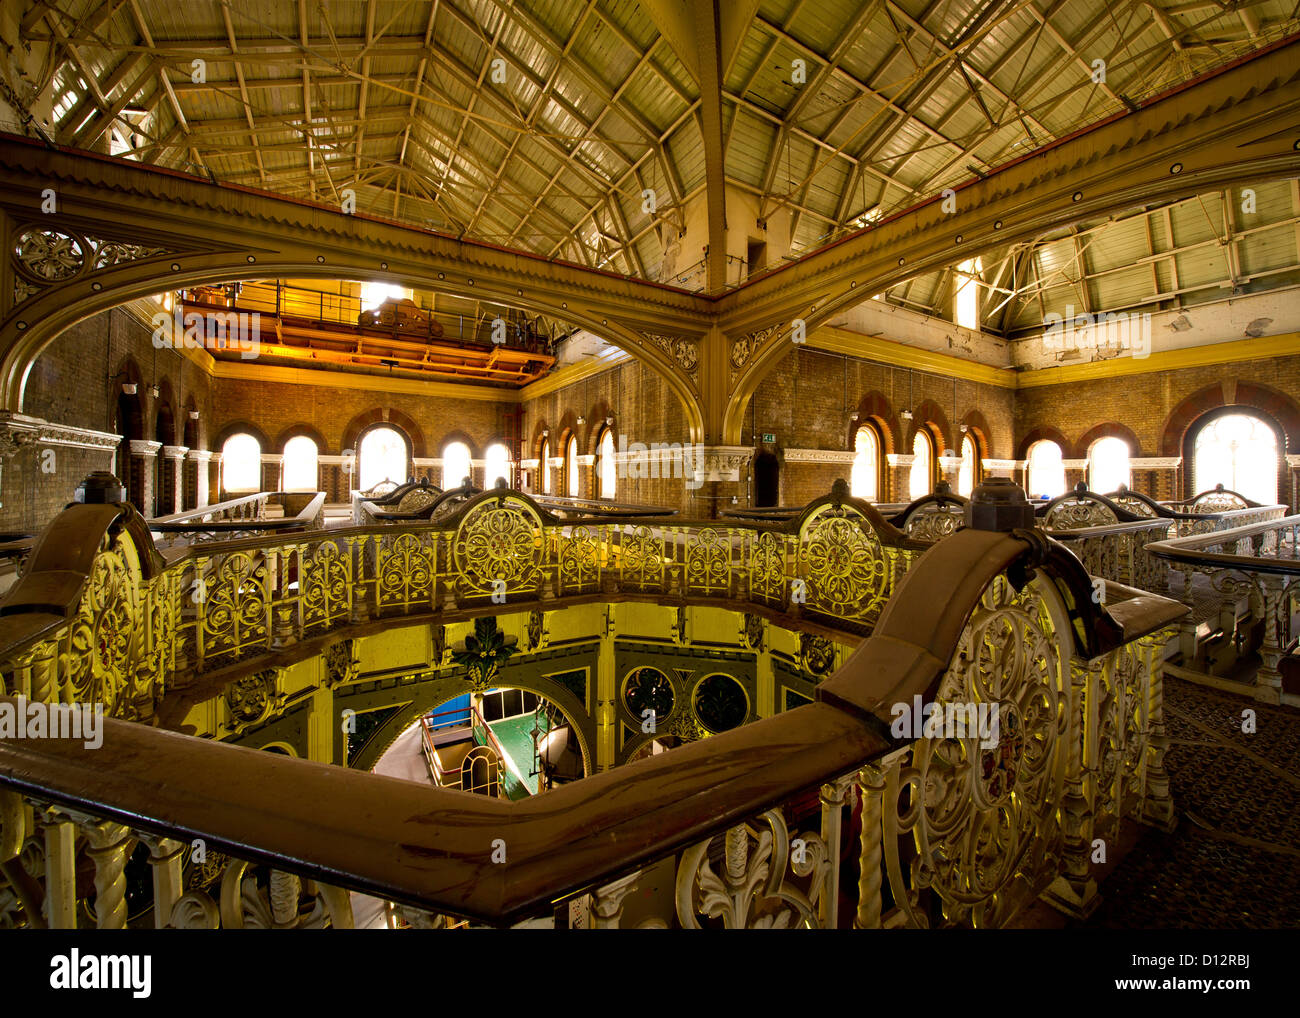 The ornate ironwork of the Abbey Mills Victorian sewage pumping station in East London - Stock Image